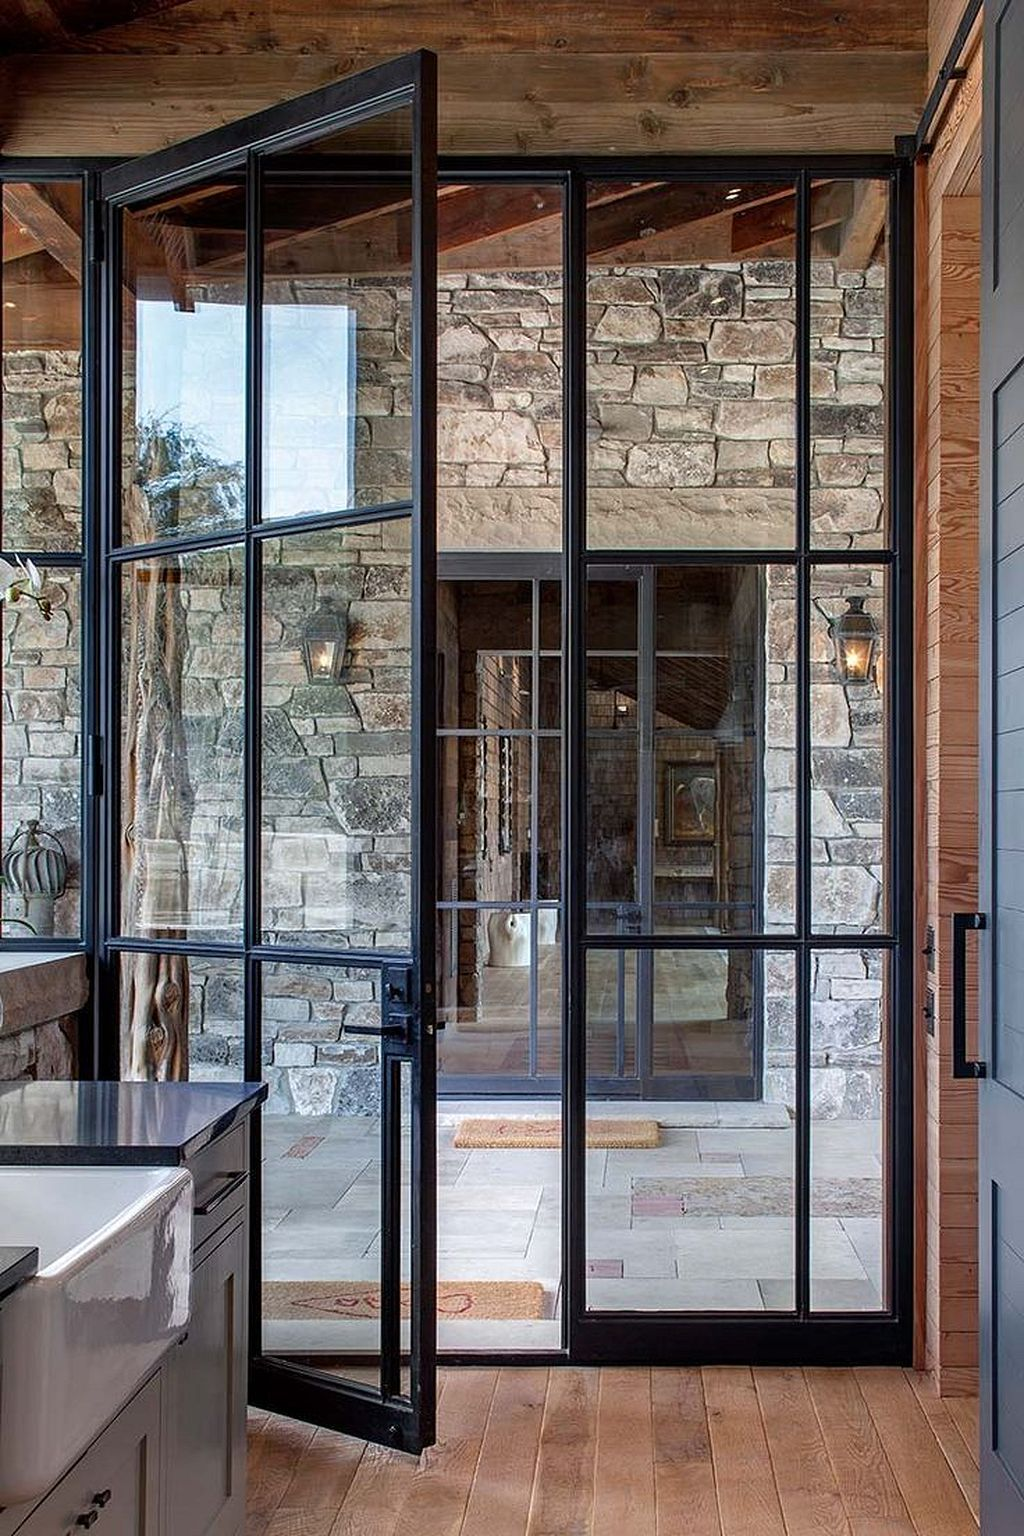 Indoor Glass Doors Indoor Glass French Doors 6 Foot Interior French Doors French Doors Exterior French Doors Patio French Doors Interior